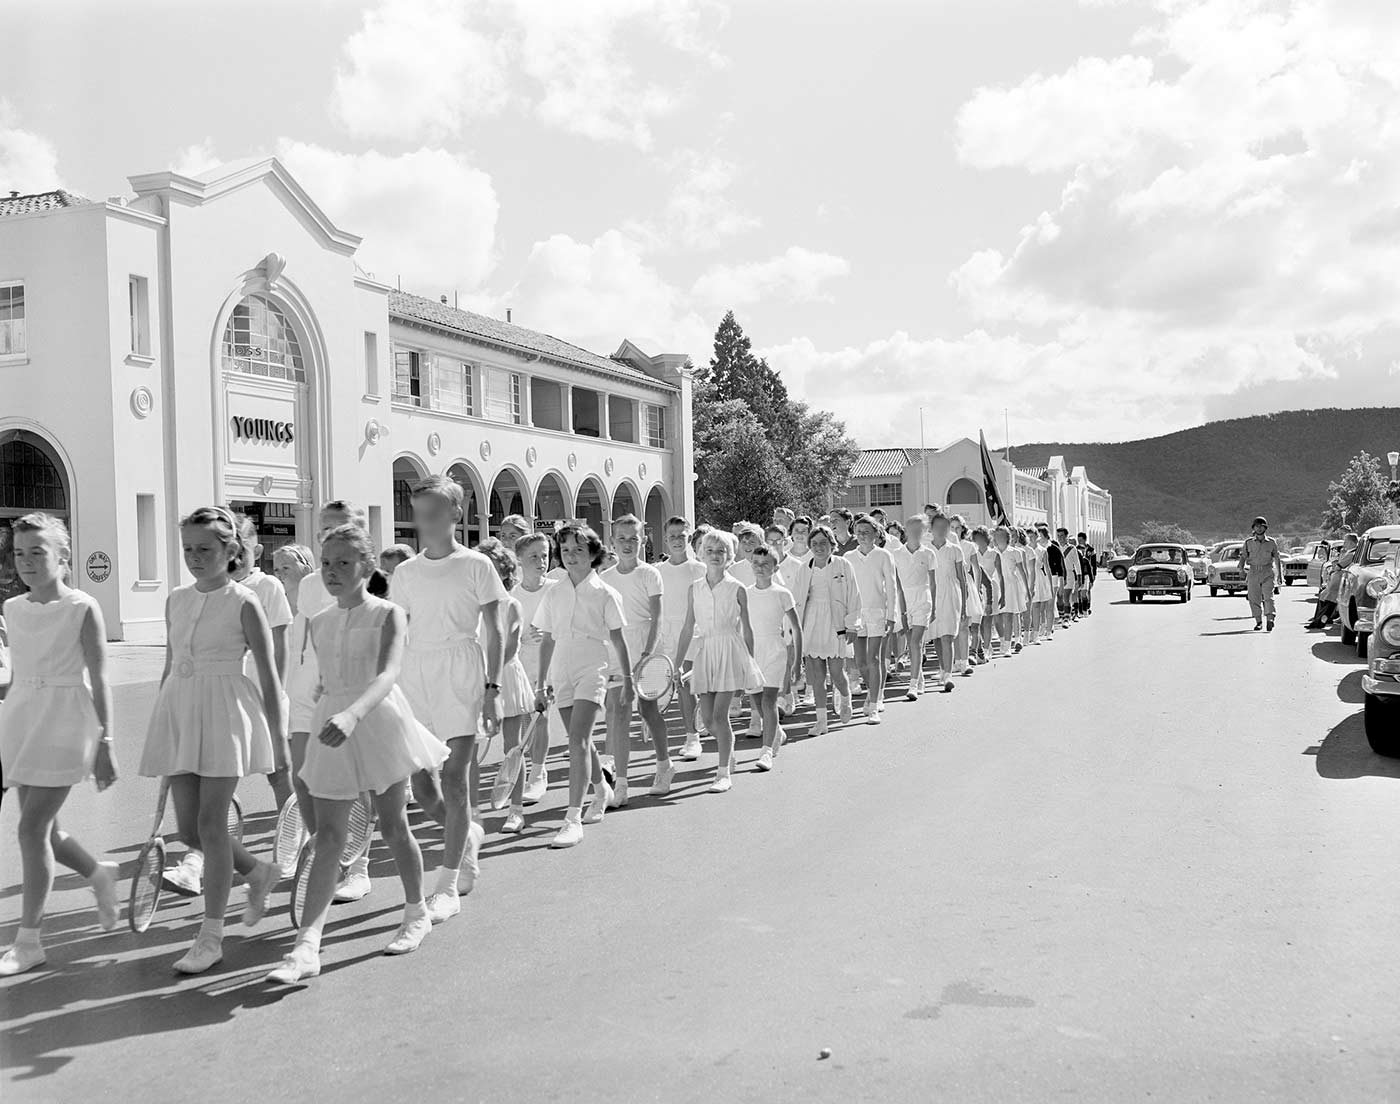 Black and white photo showing a group of children, wearing tennis whites and carrying racquets, marching along a street, three abreast. A white building with 'YOUNGS' on the facade is to the left of the marchers. A row of cars is partially visible on the right. - click to view larger image